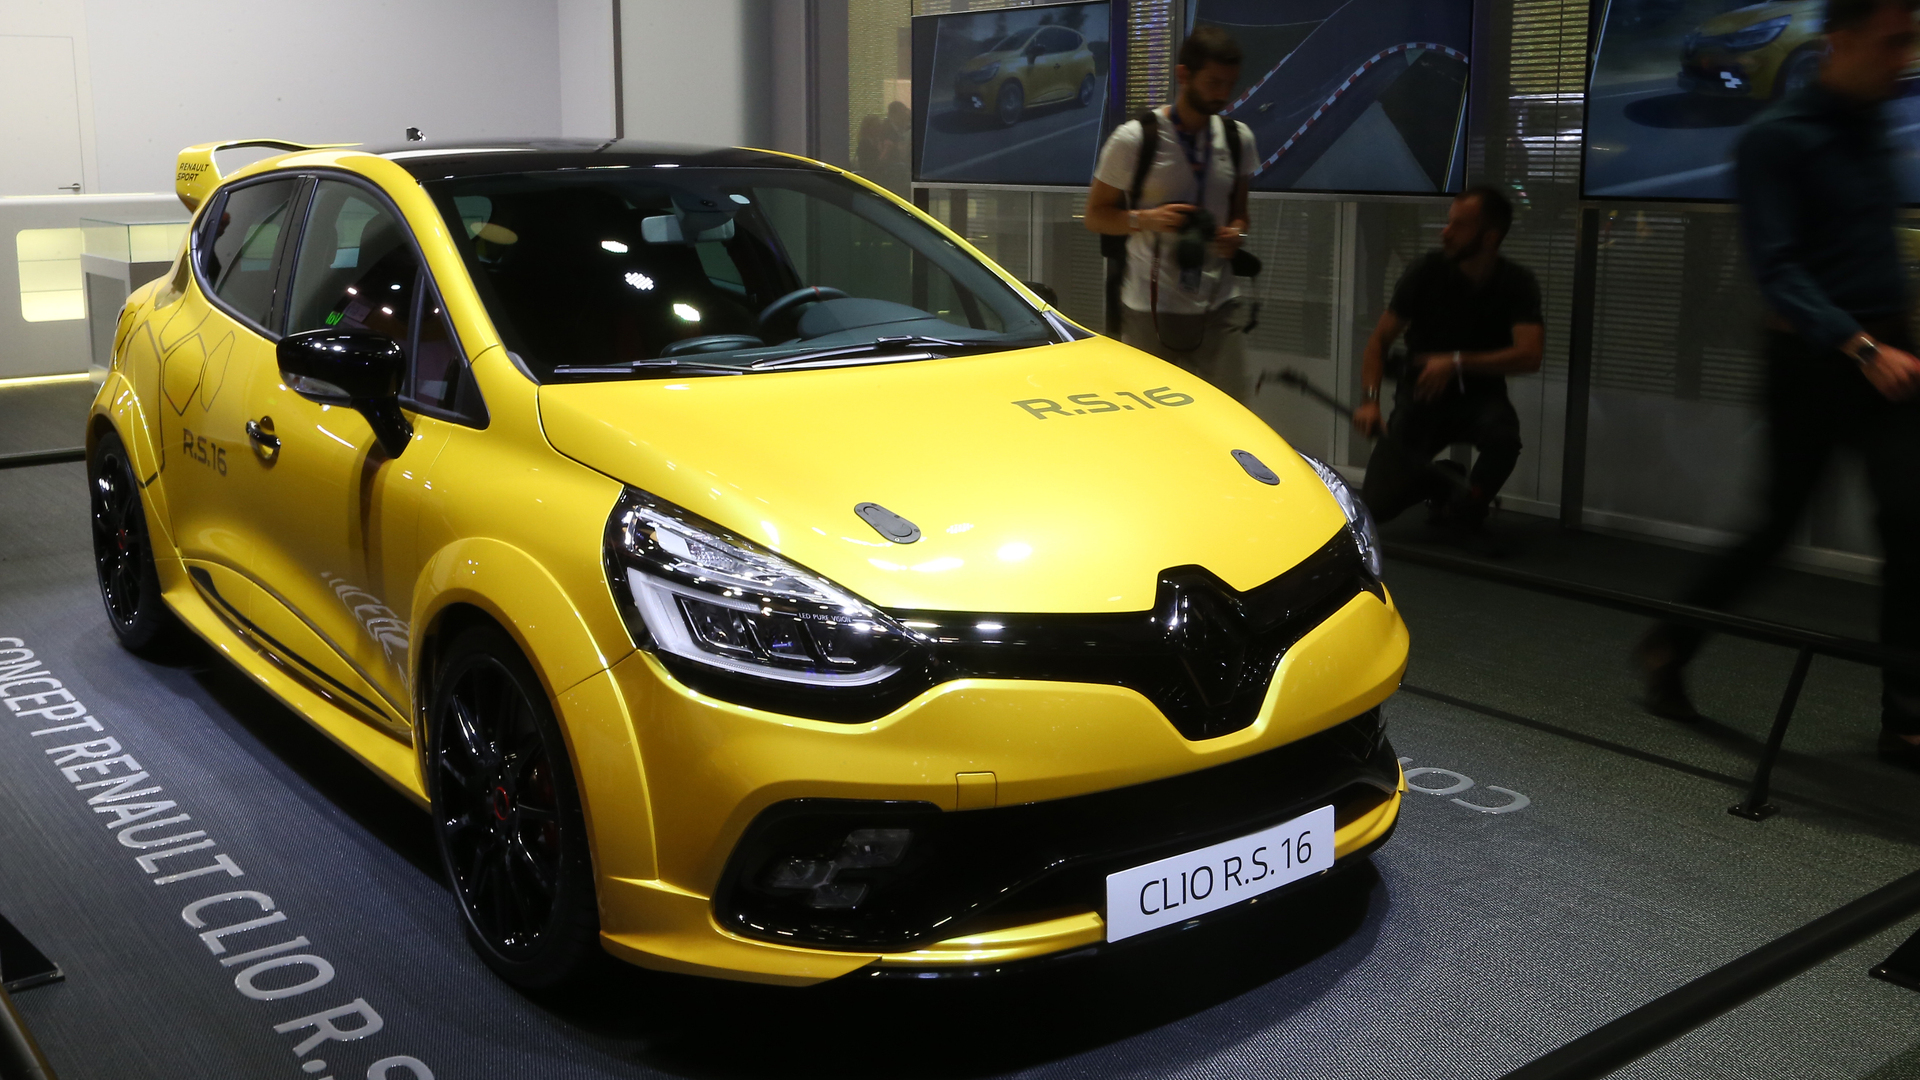 Epic Renault Clio Rs16 Concept Cancelled Hot Hatch Fans In Mourning